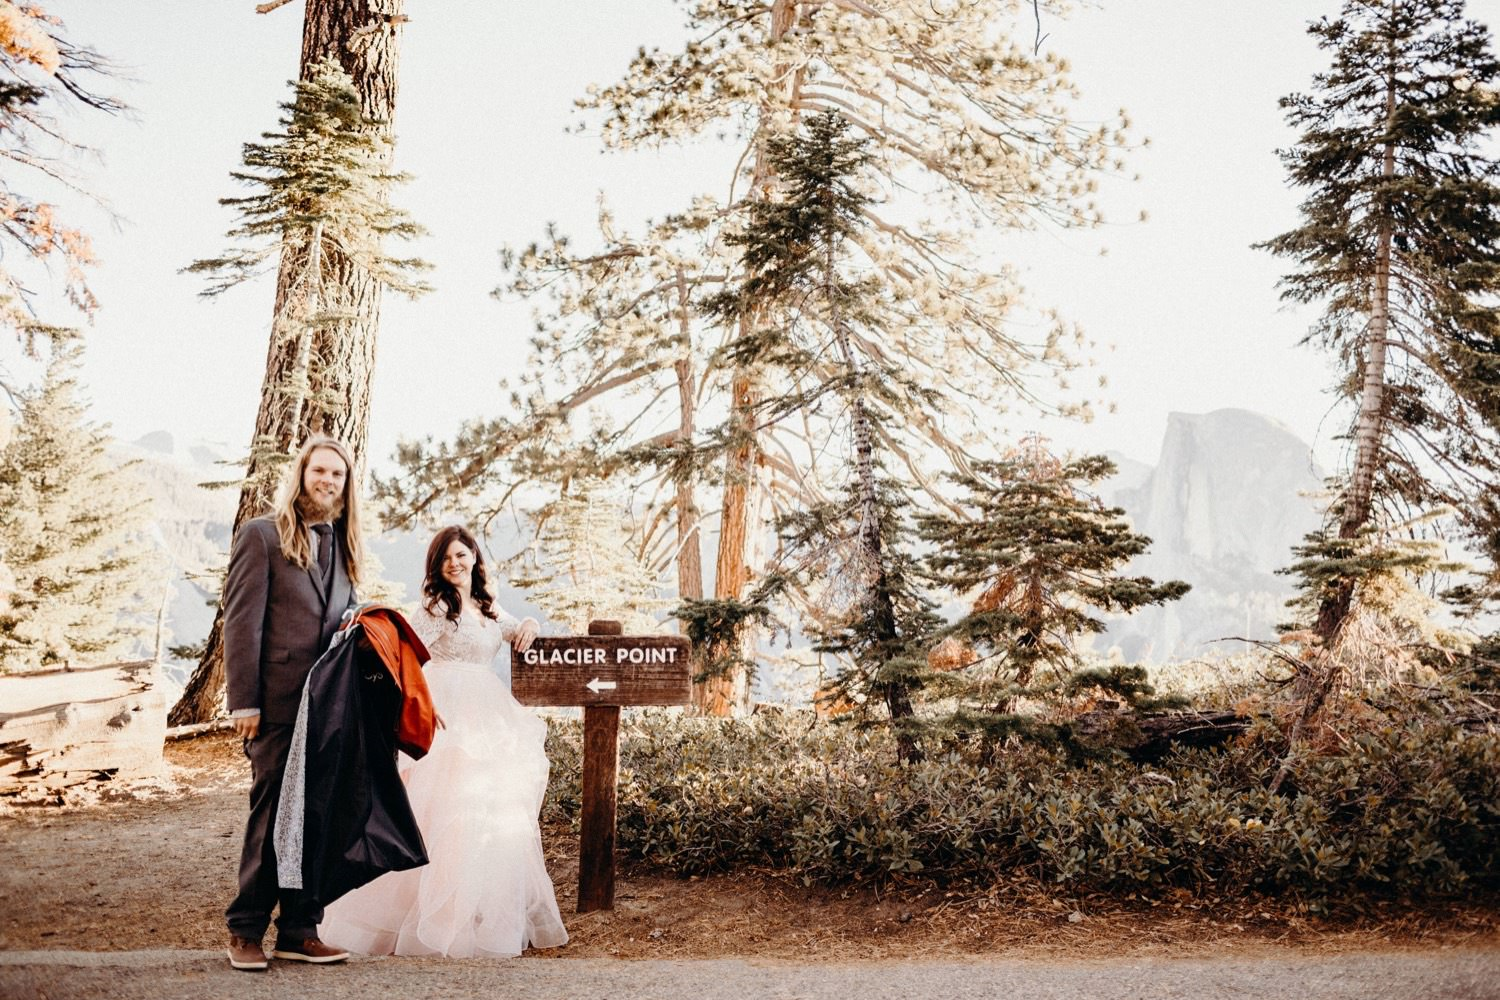 14_alex+matt-wedding-112_park_national_elopement_wedding_yosemite_intimate.jpg